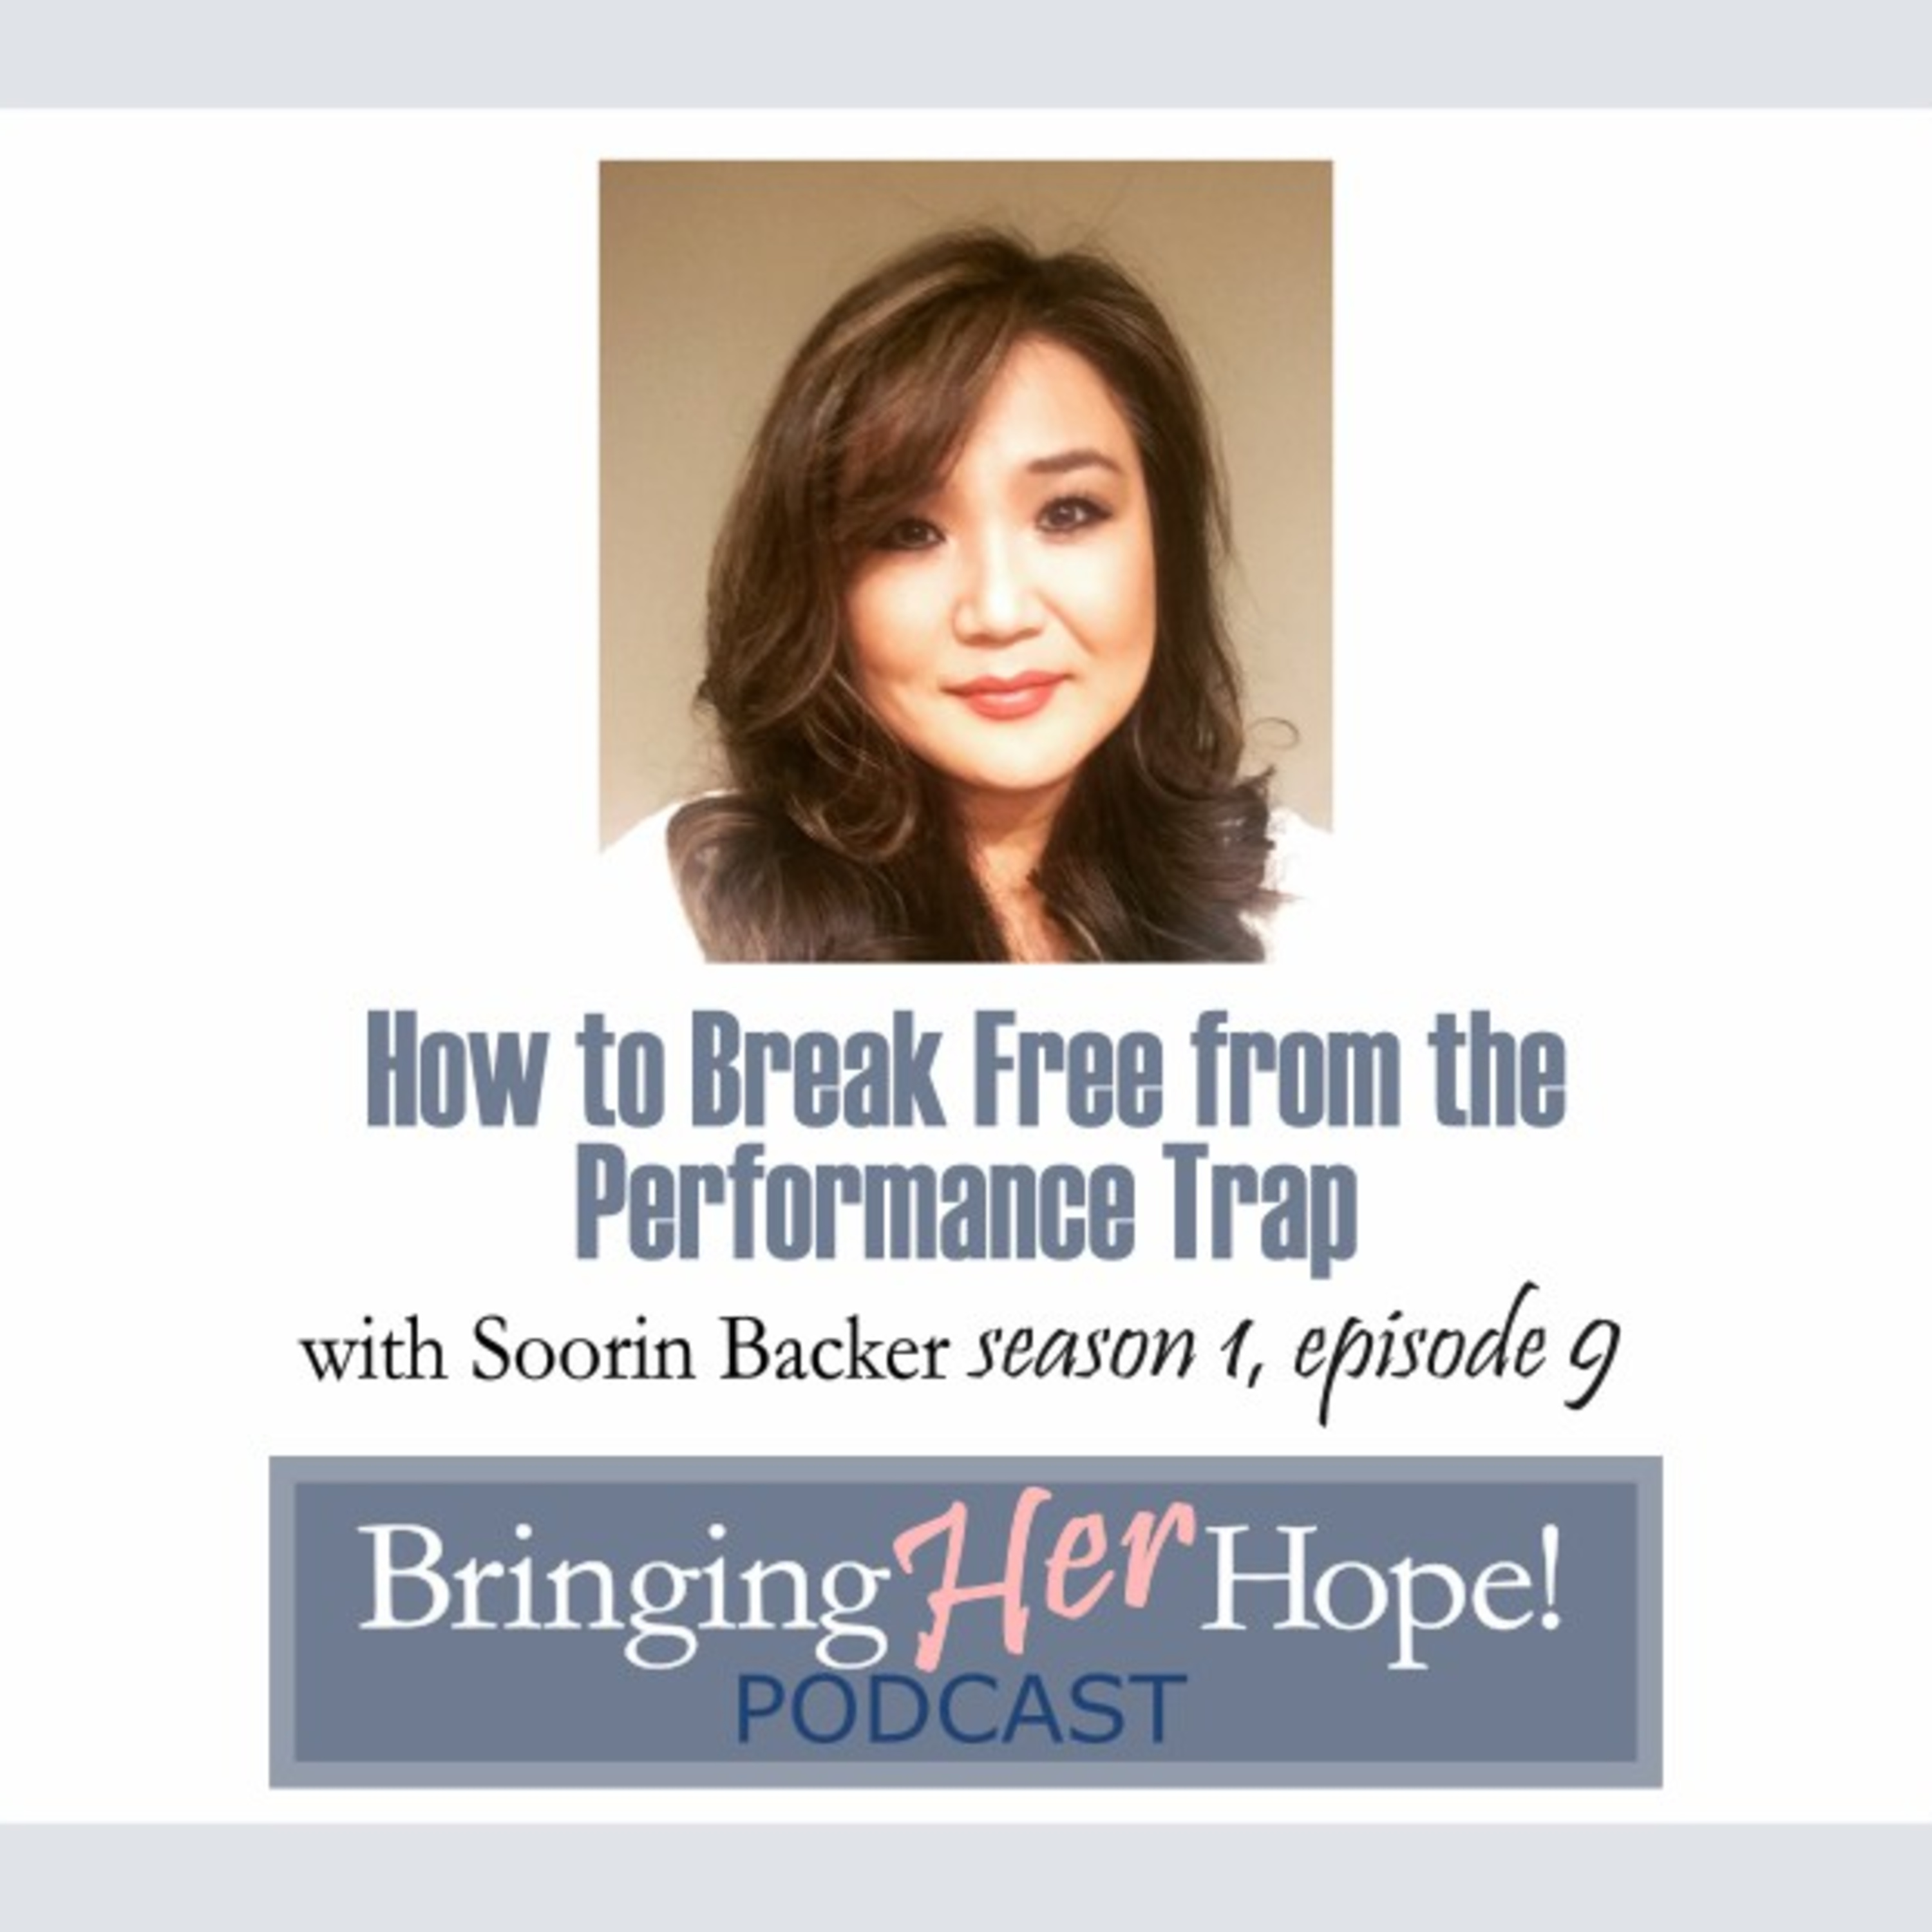 Episode 9: How to break free from the performance trap with special guest Soorin Backer